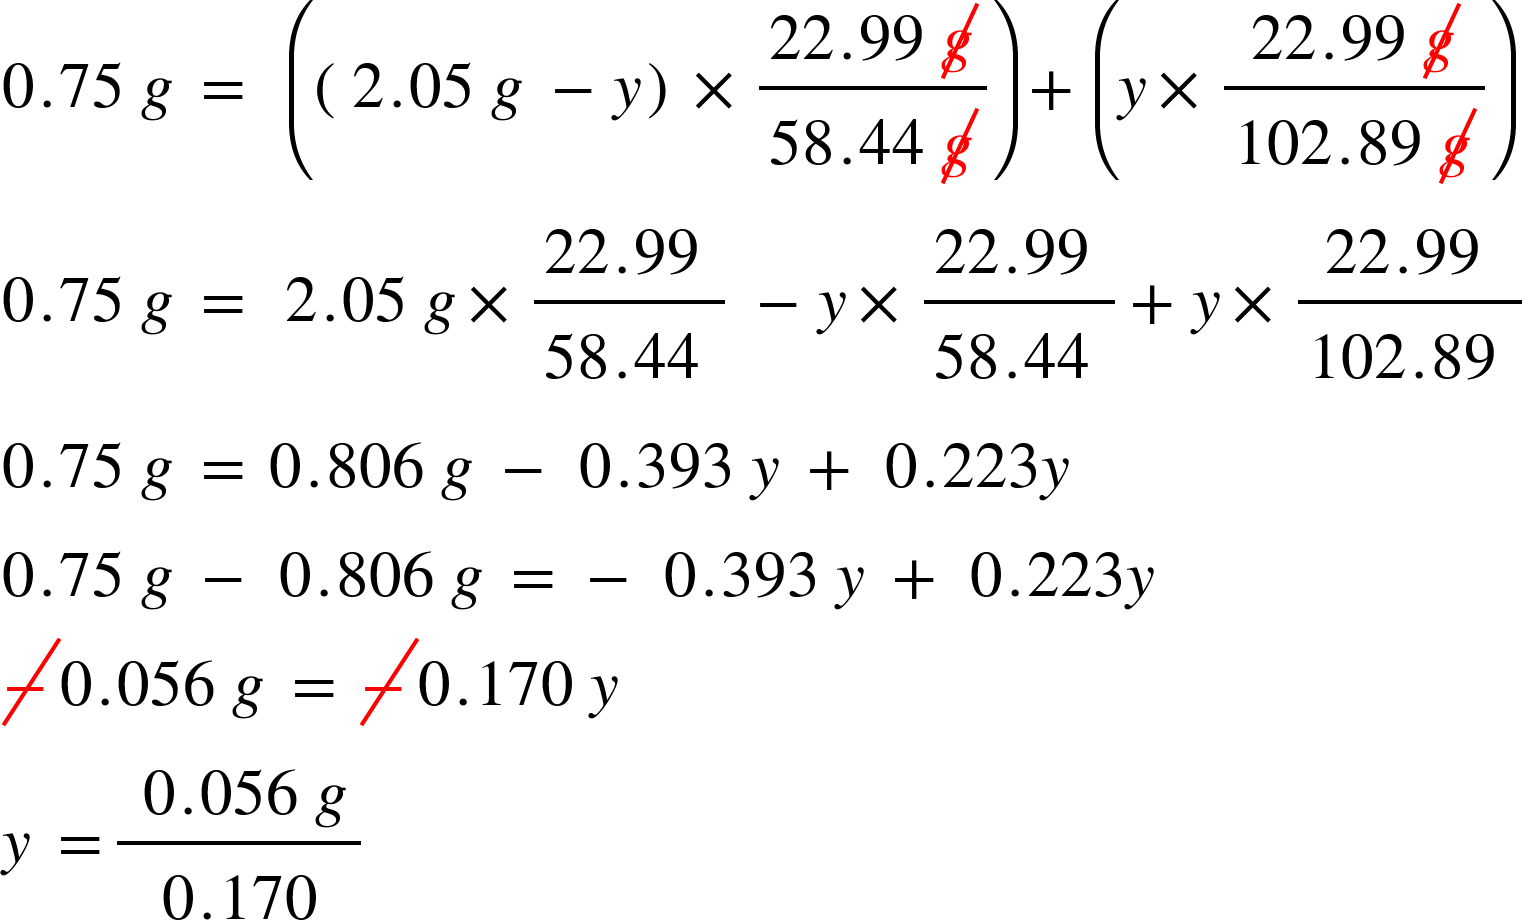 Calcium Blog What Is The Percent Composition Of Each